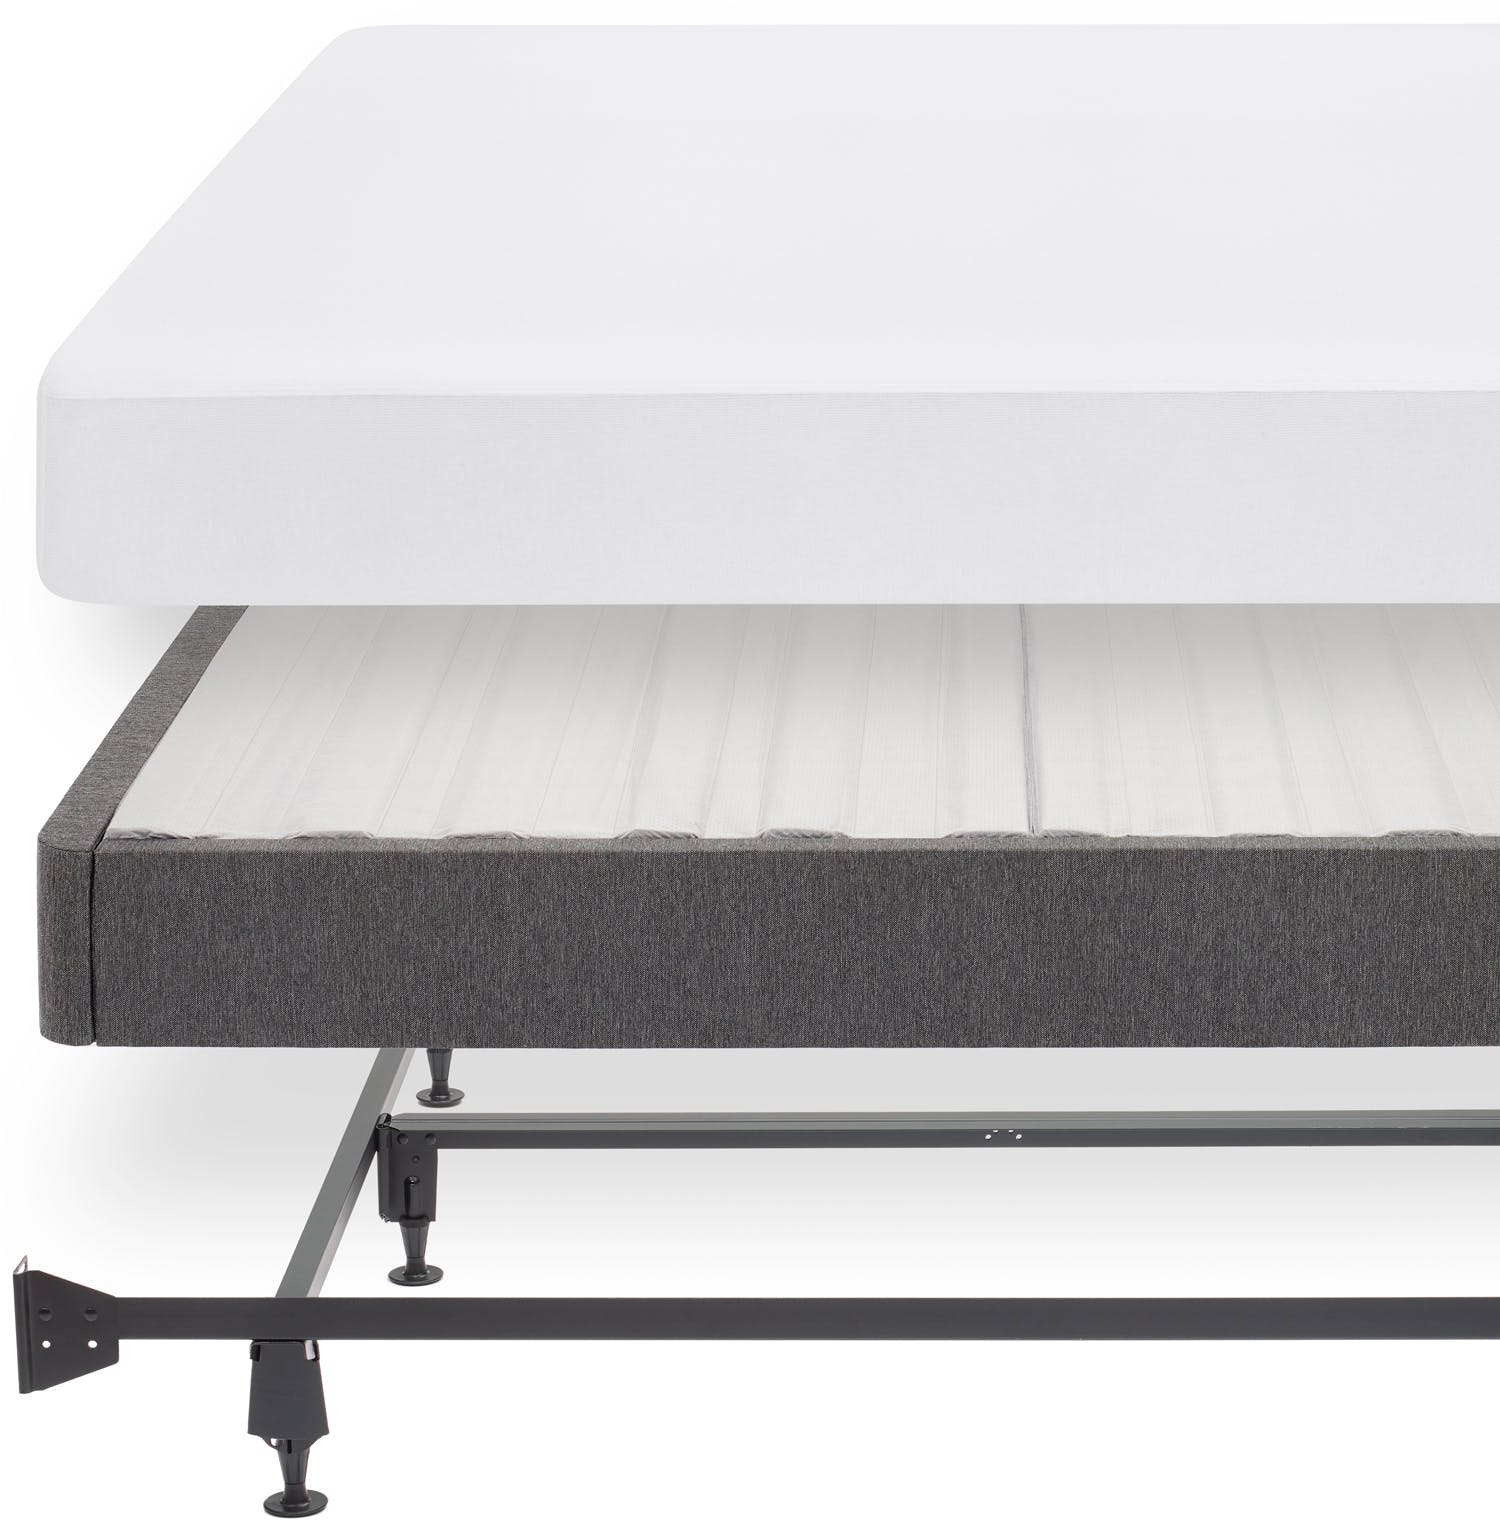 The Casper mattress protector, foundation, and metal bed frame